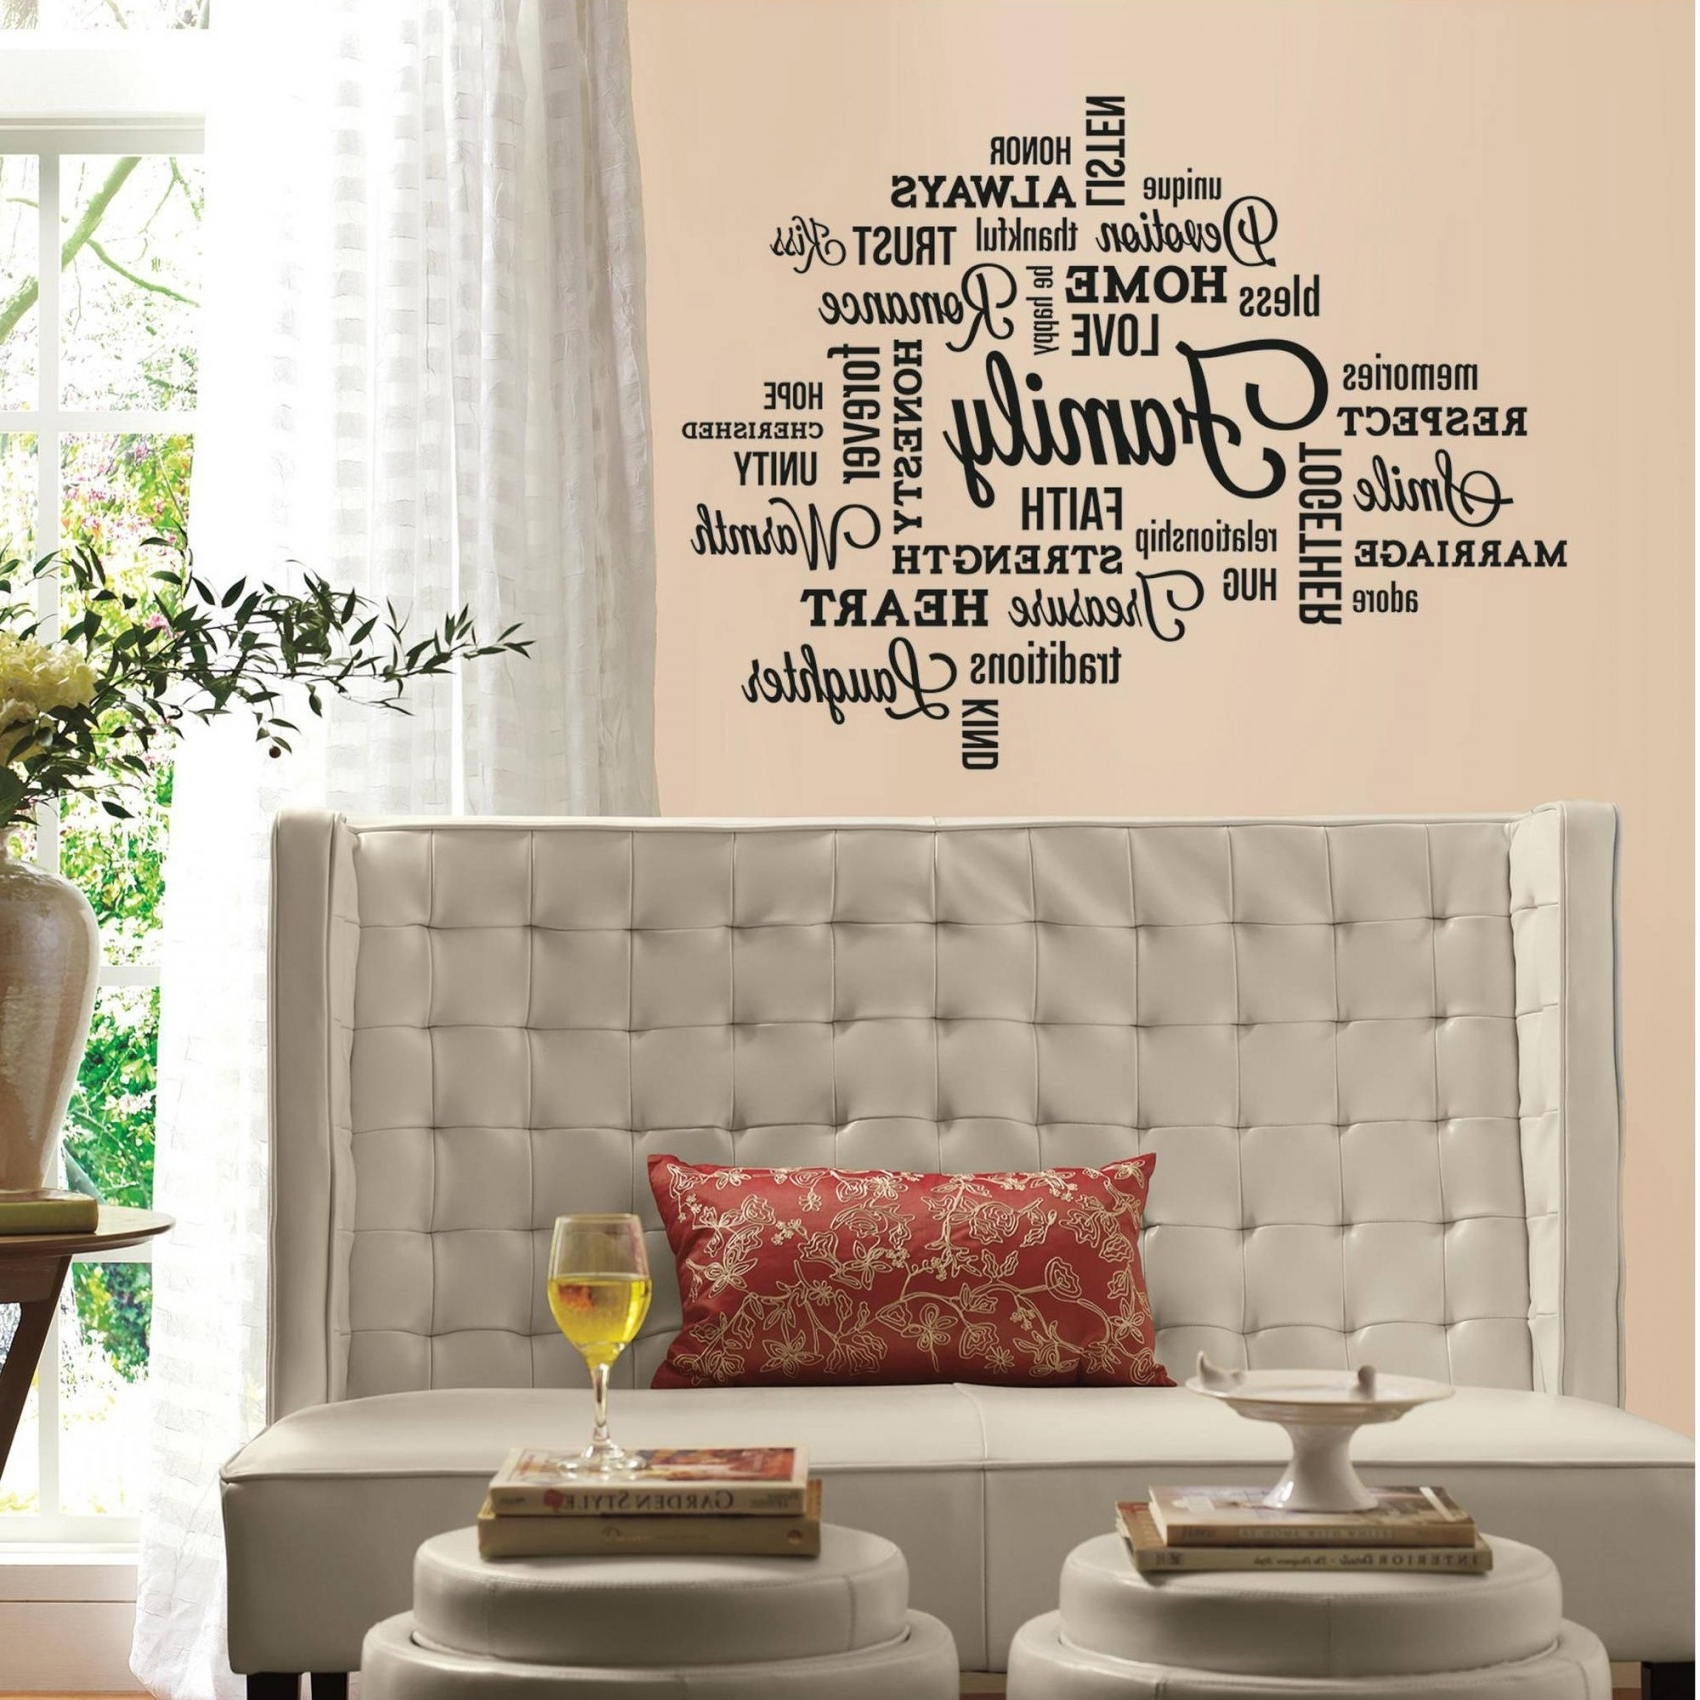 Cars Wall Decals Walmart New 31 Awesome Walmart Wall Art Canvas With Regard To Most Popular Walmart Wall Art (View 12 of 15)